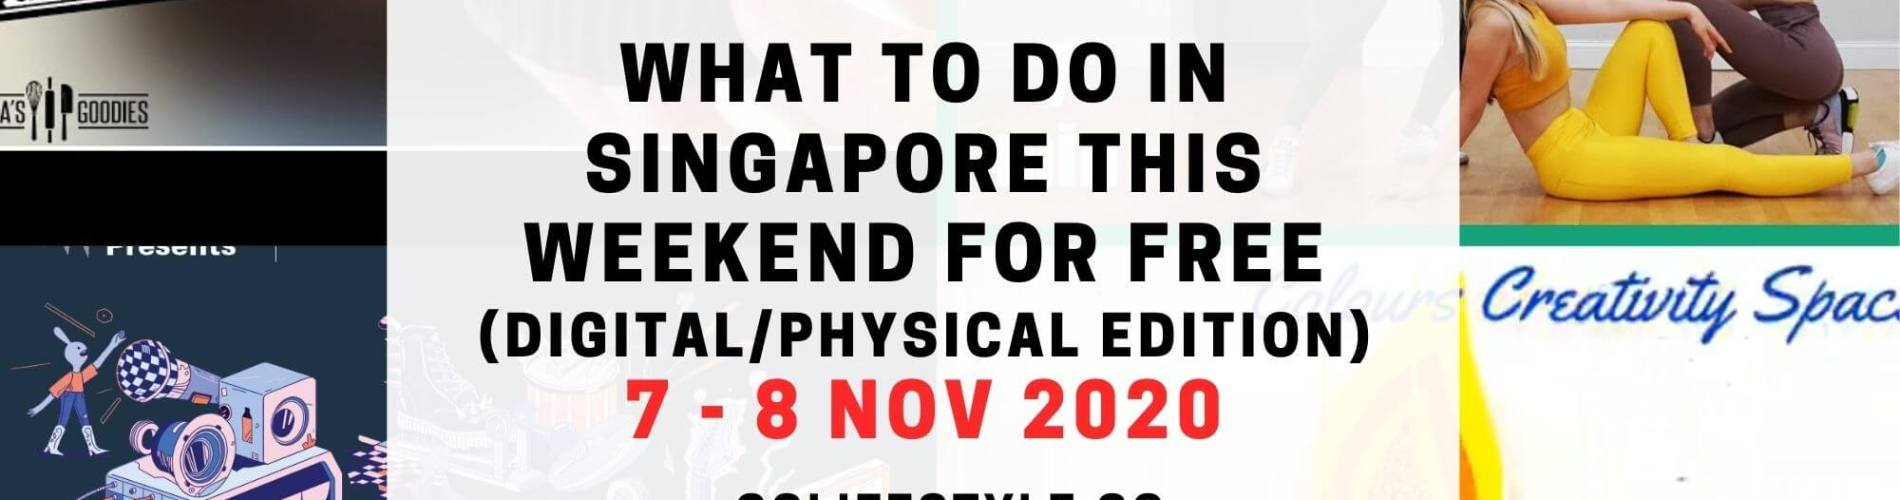 what to do in singapore this weeknd free 7 - 8 nov 2020